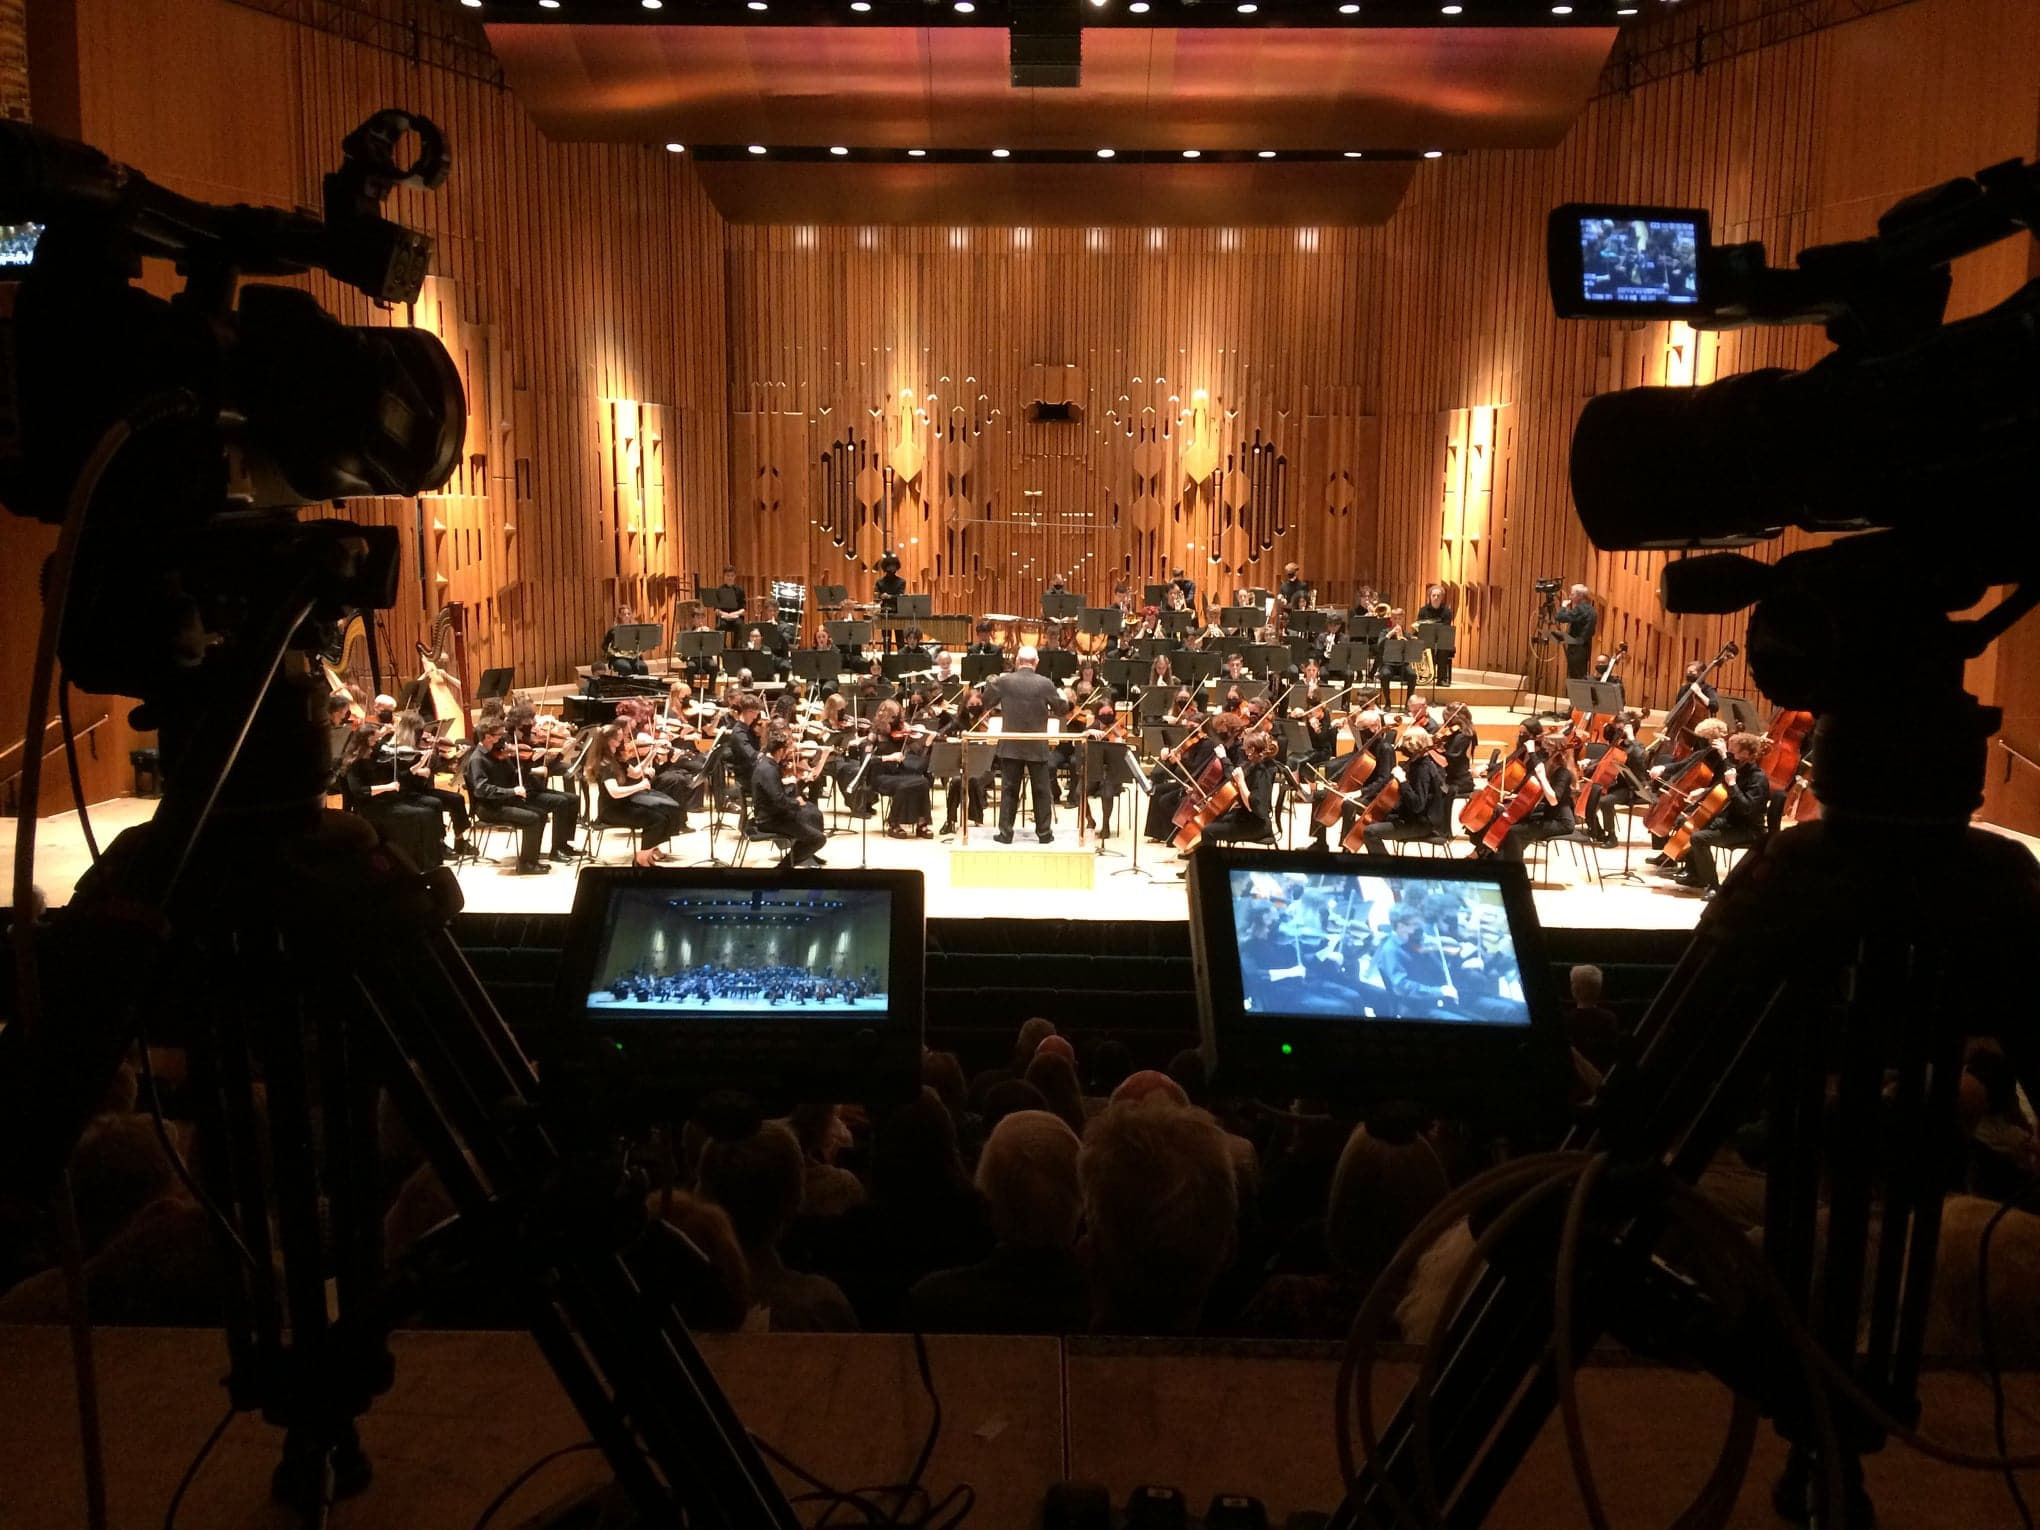 Exclusive: Nightmare continues at the Barbican as conductor is fired